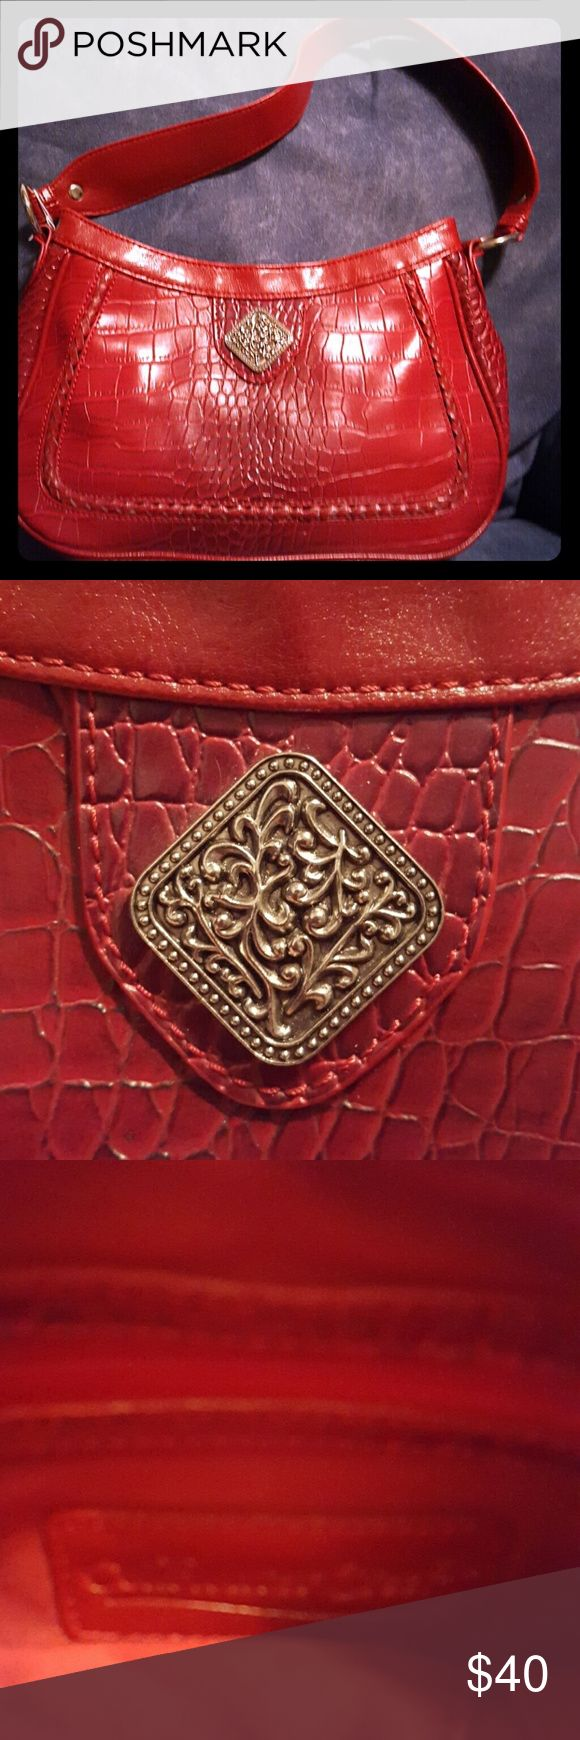 Red Coldwater Creek bag.  NWOT Beautiful red bag! Coldwater Creek beautiful leather with a designer metal piece that makes it beautiful and indicates that this bag is a Coldwater Creek bag. NEW! Coldwater Creek Bags Shoulder Bags